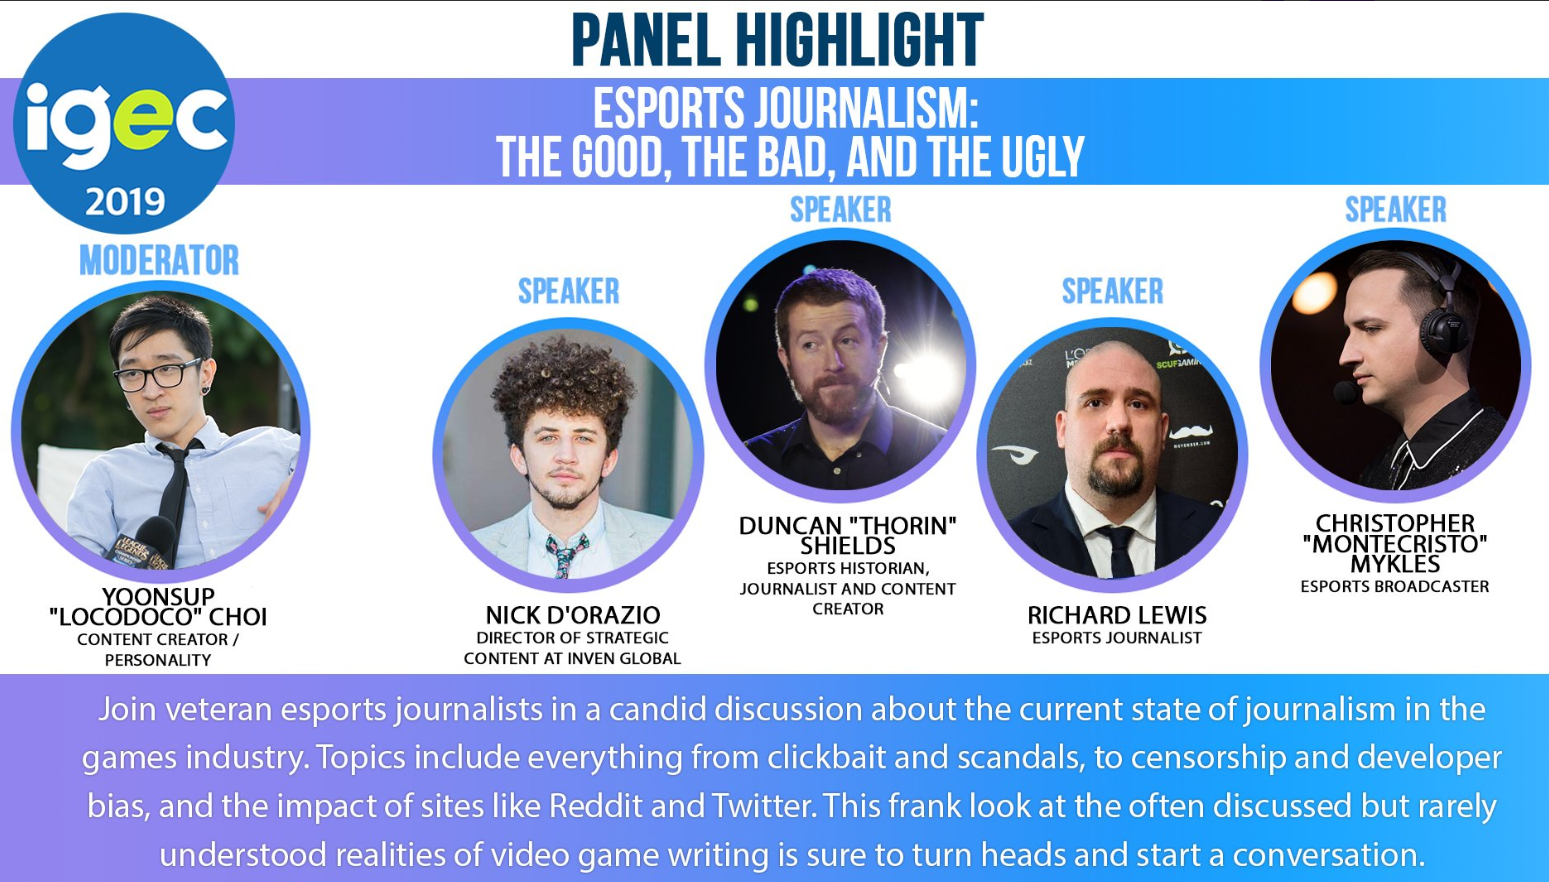 IGEC Panel Highlight: Esports Journalism: The Good, the Bad